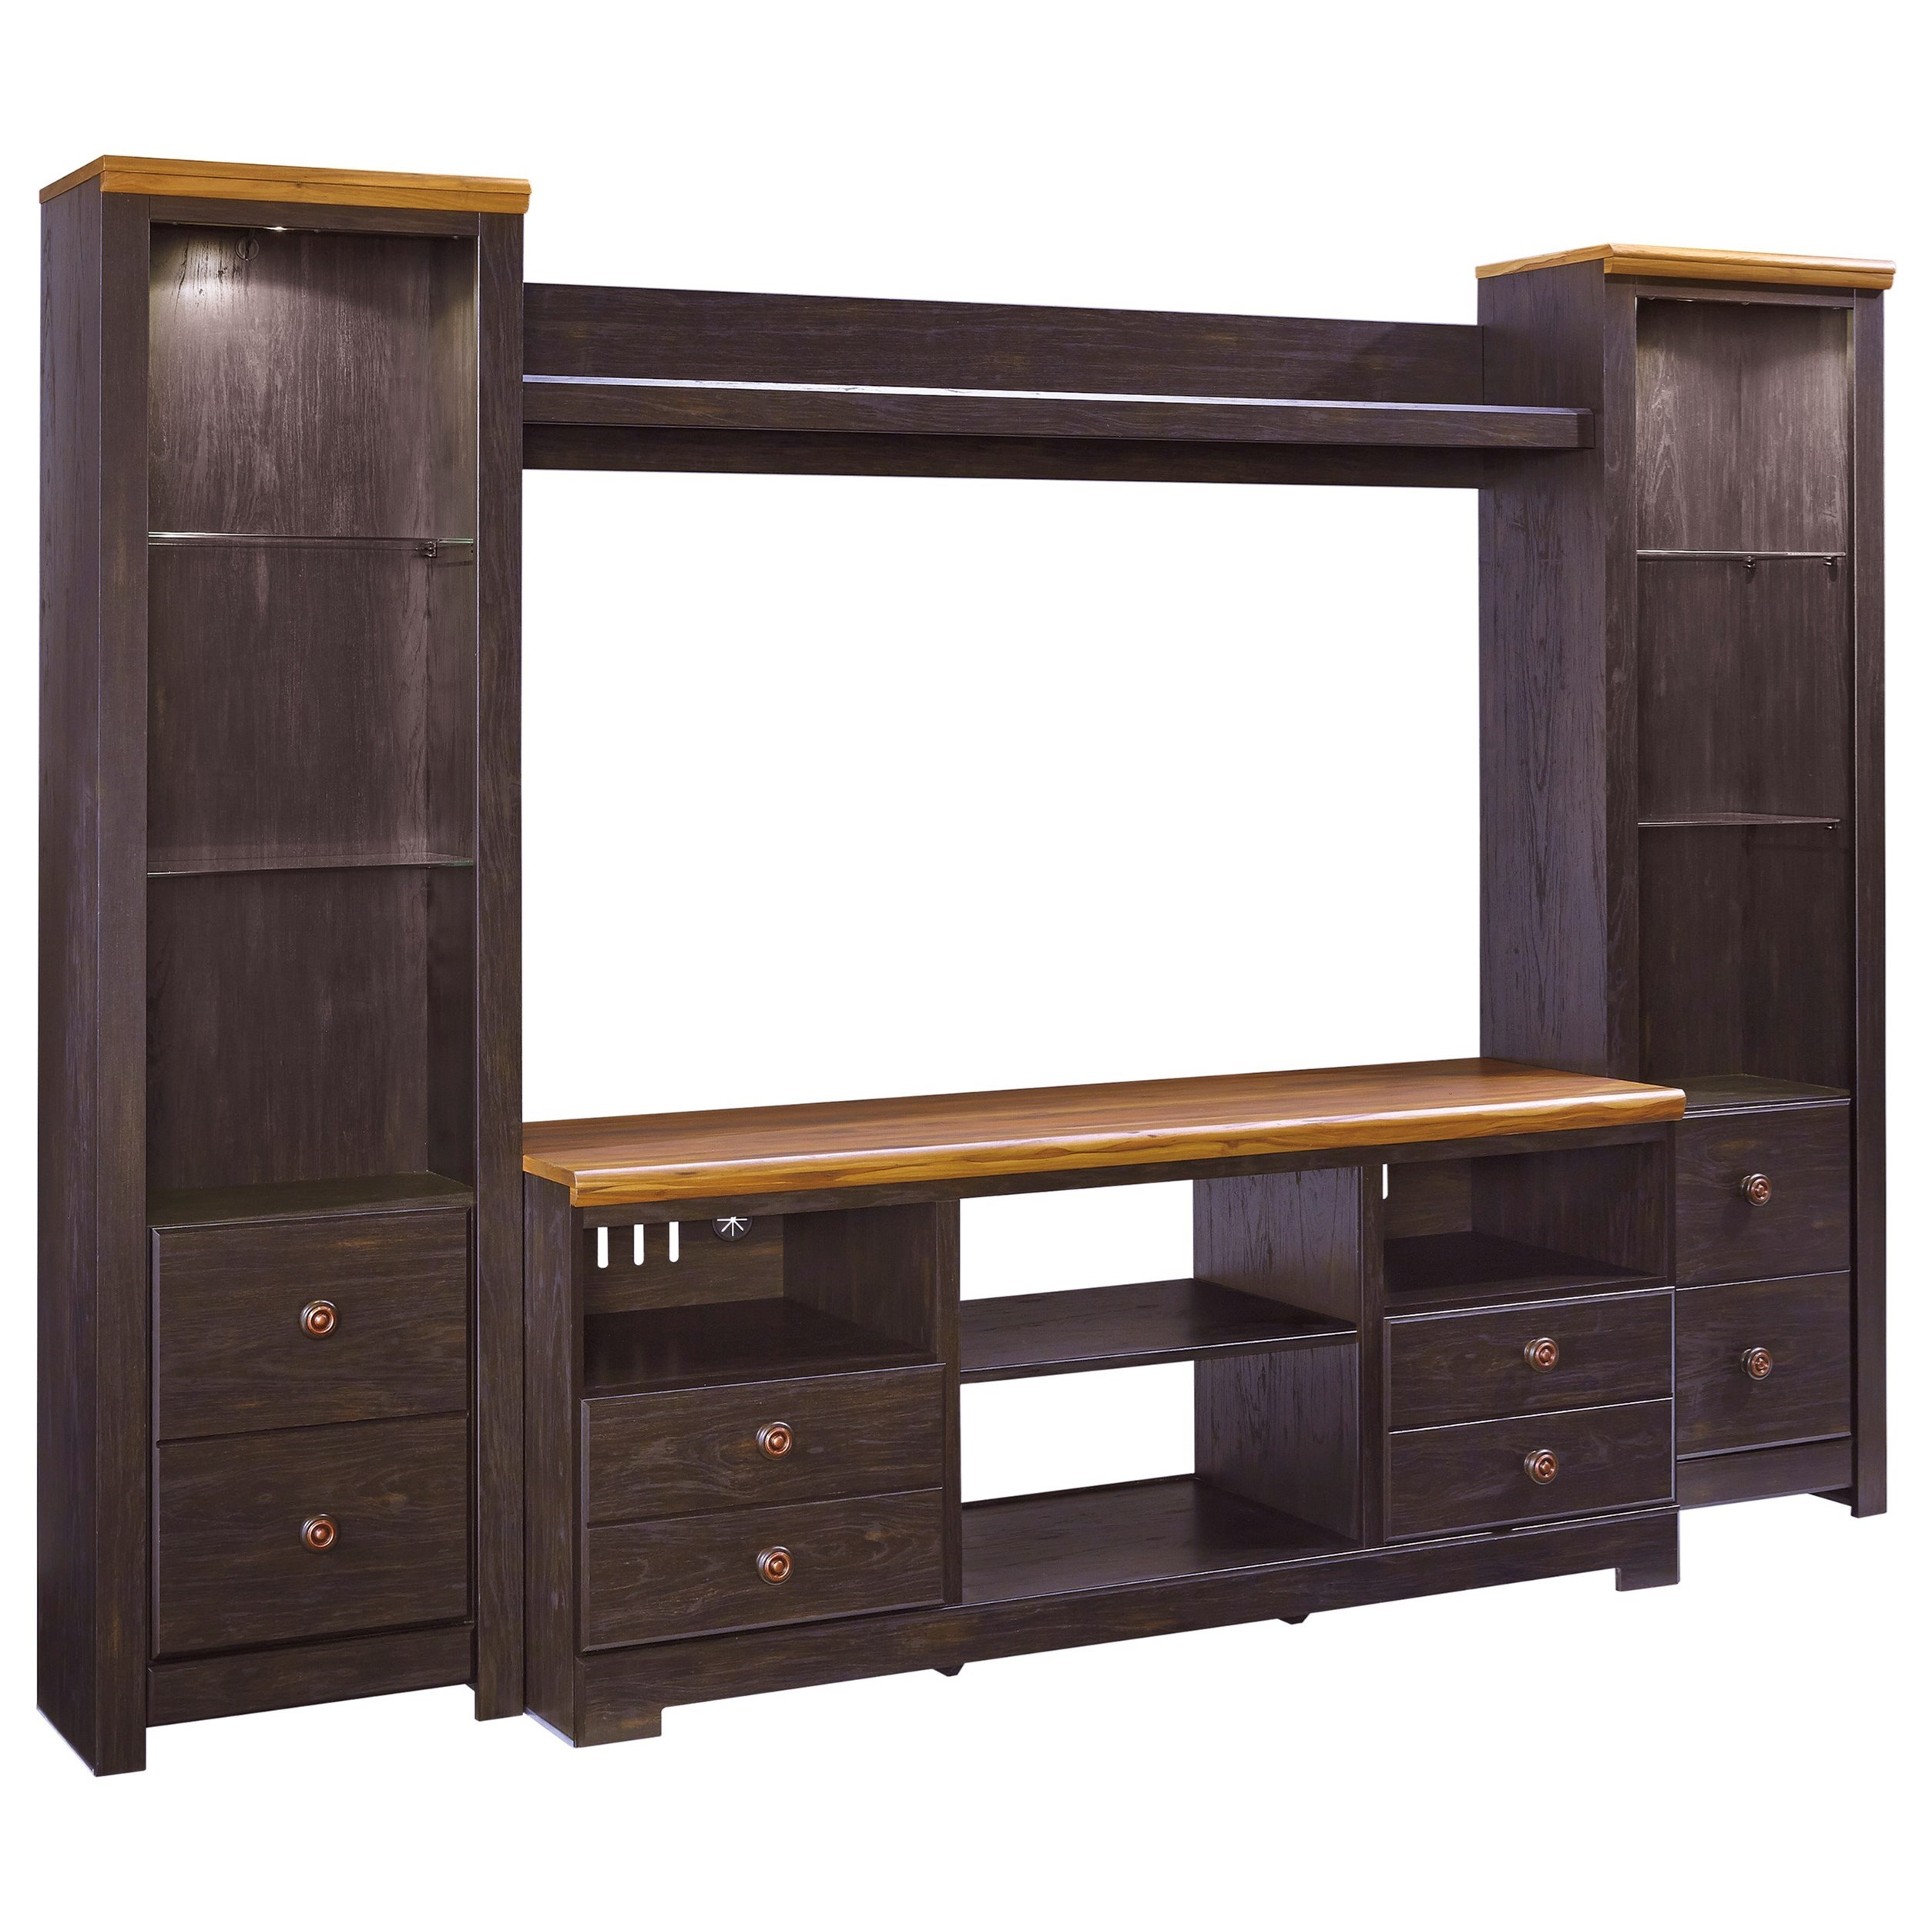 Signature Design by Ashley Maxington Large TV Stand w/ 2 Tall Piers and Bridge - Item Number: W220-68+2x24+27